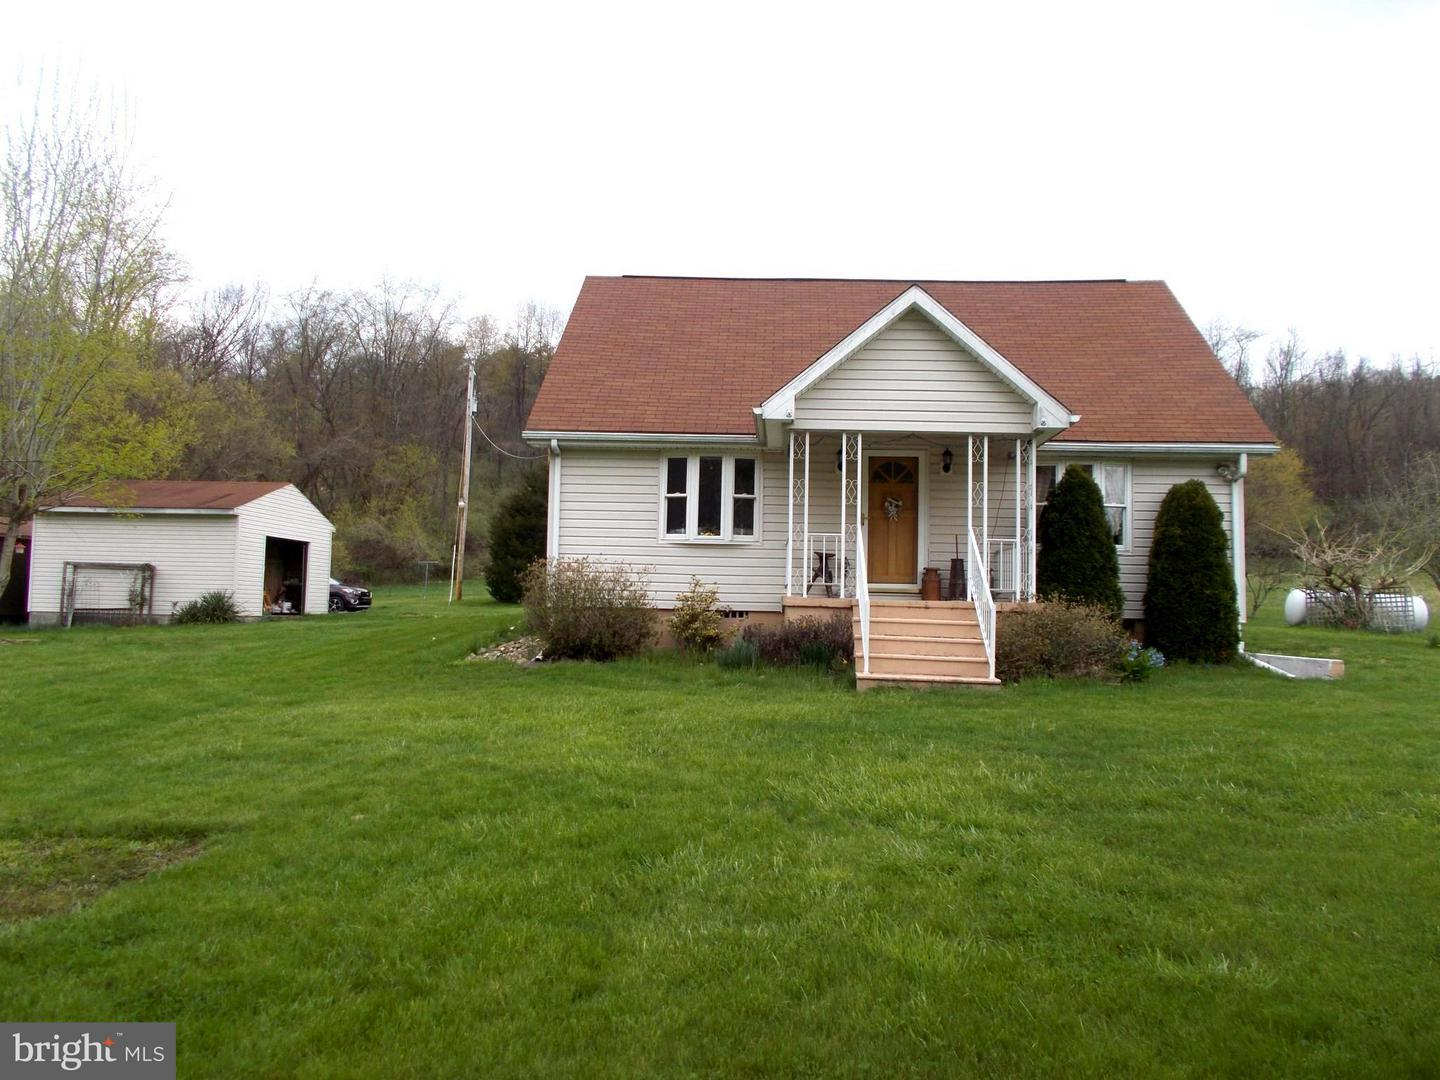 Single Family for Sale at 18186 Patterson Creek Rd Burlington, West Virginia 26710 United States